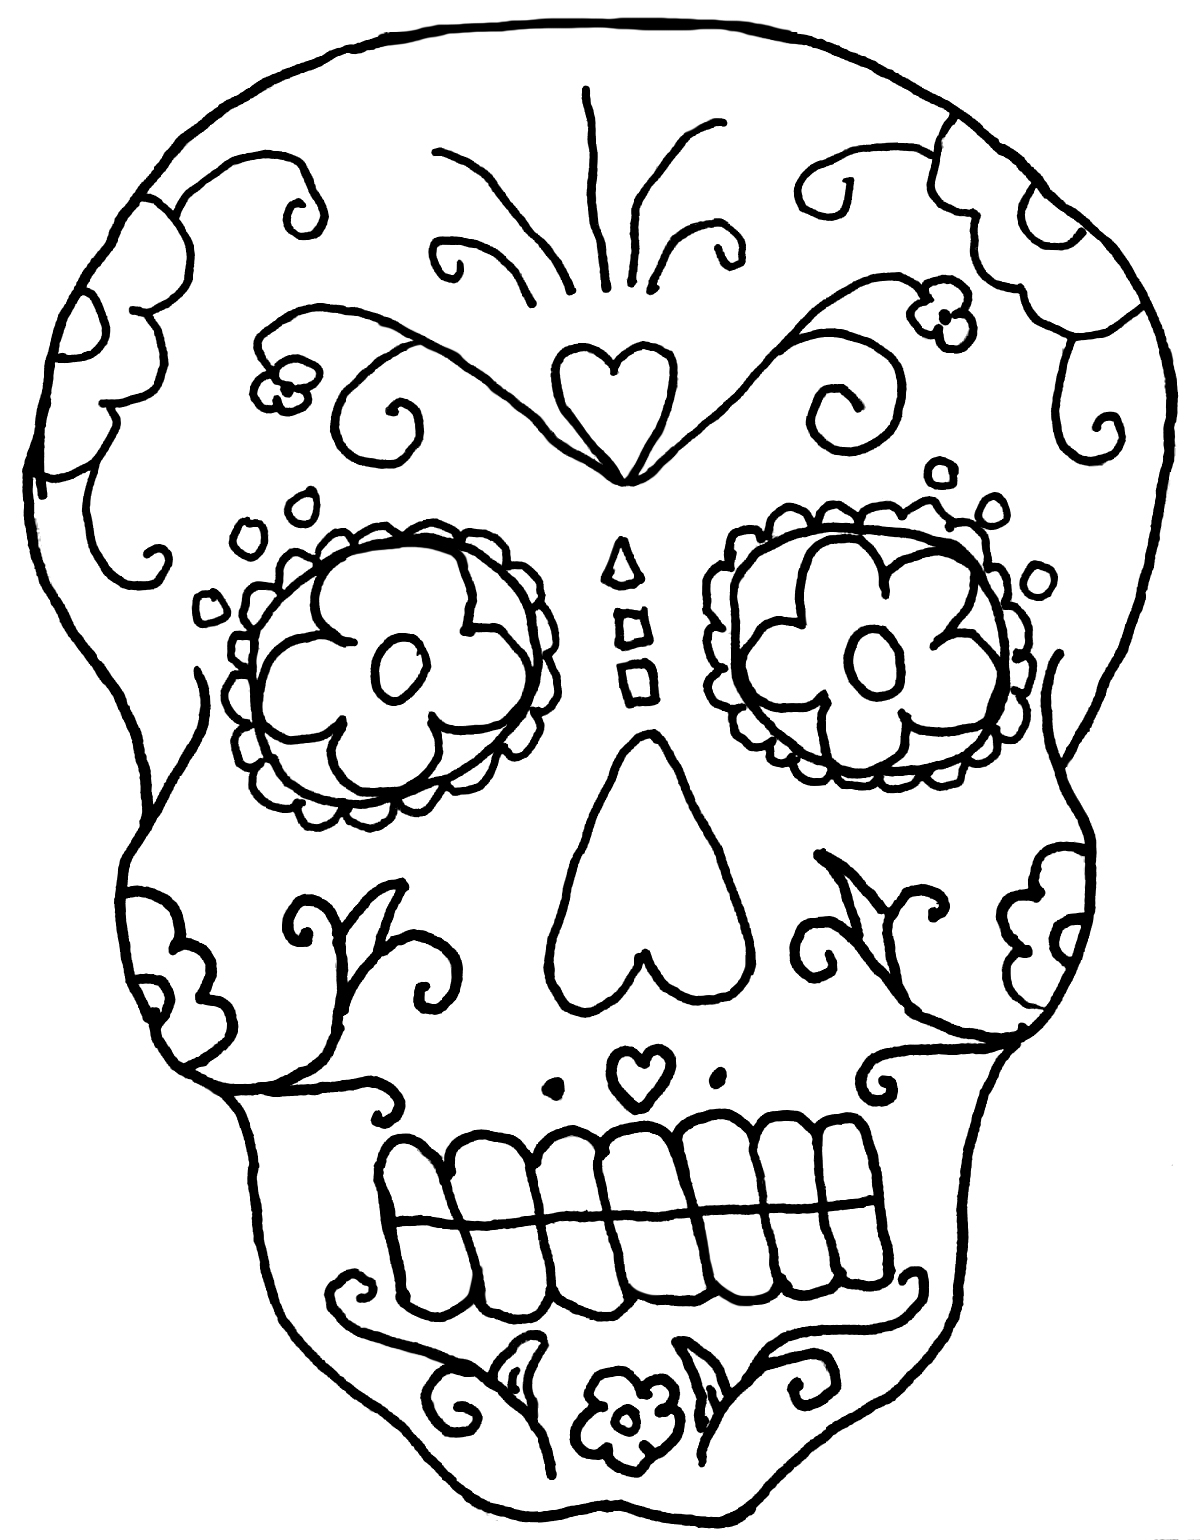 day of the dead coloring pages free printable day of the dead couple pdf coloring page dead of free the coloring pages day